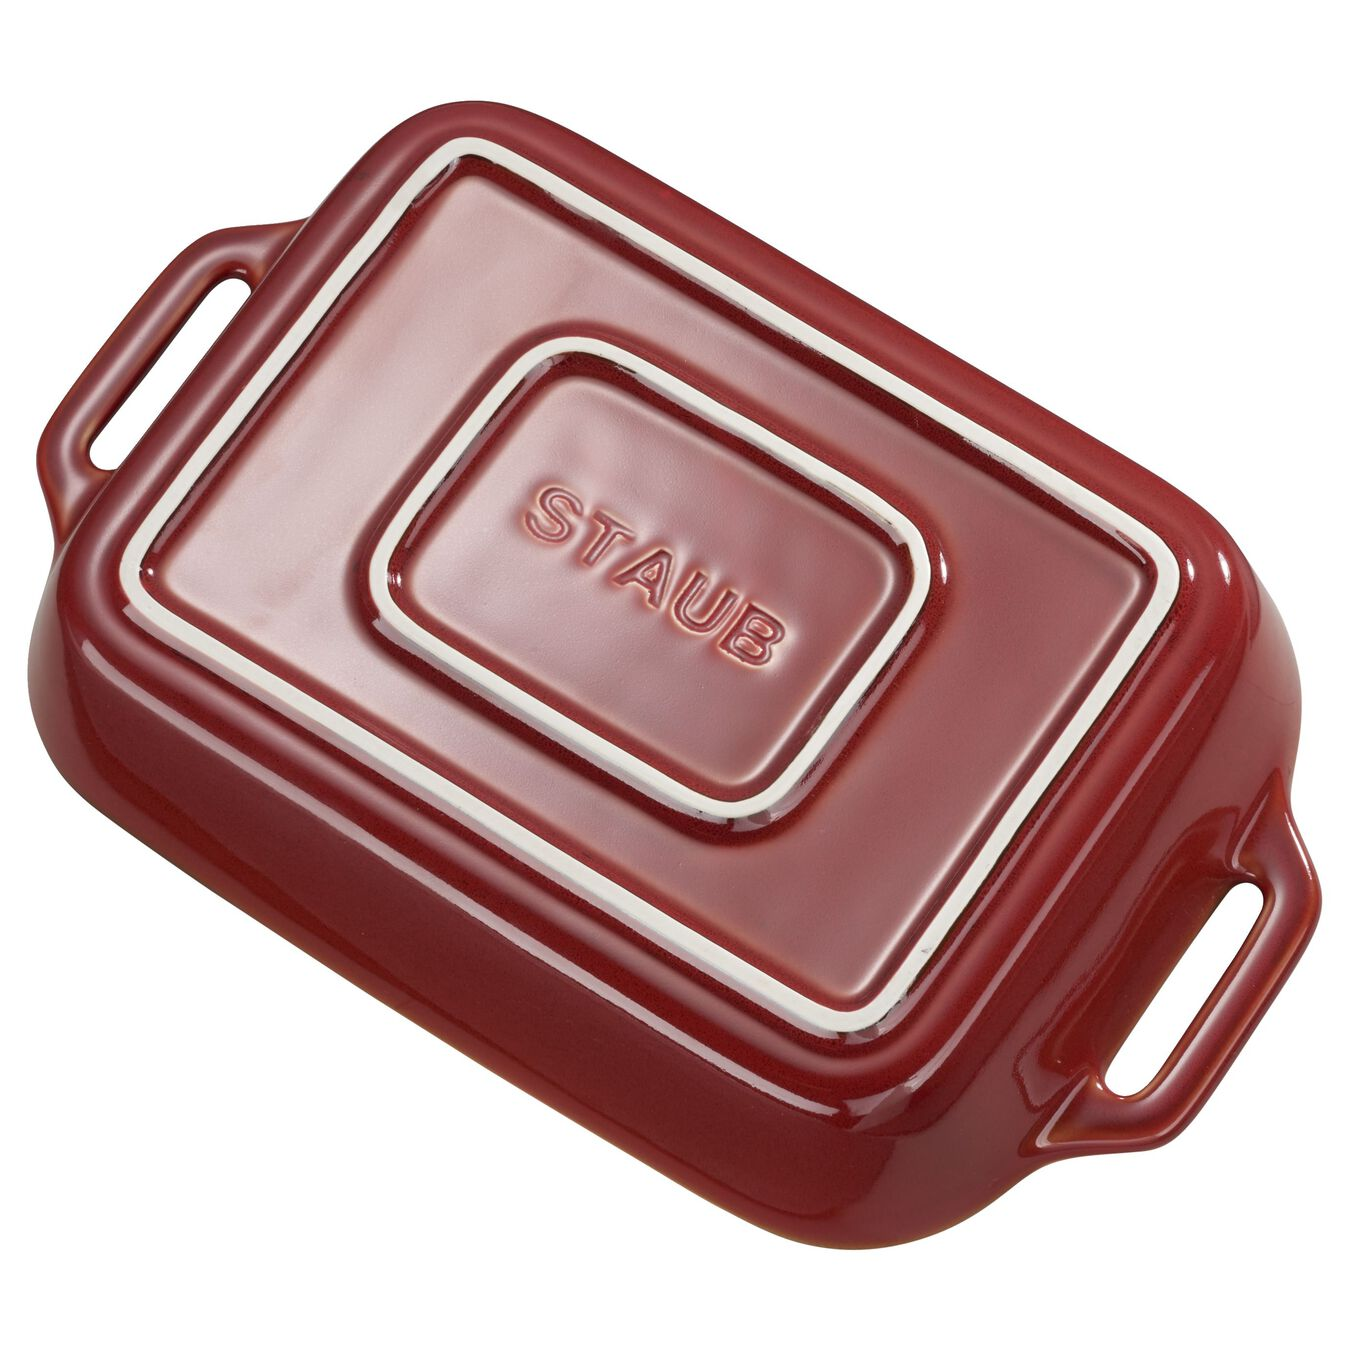 7.87 x 10.75 inch, rectangular, Oven dish, rustic red,,large 1